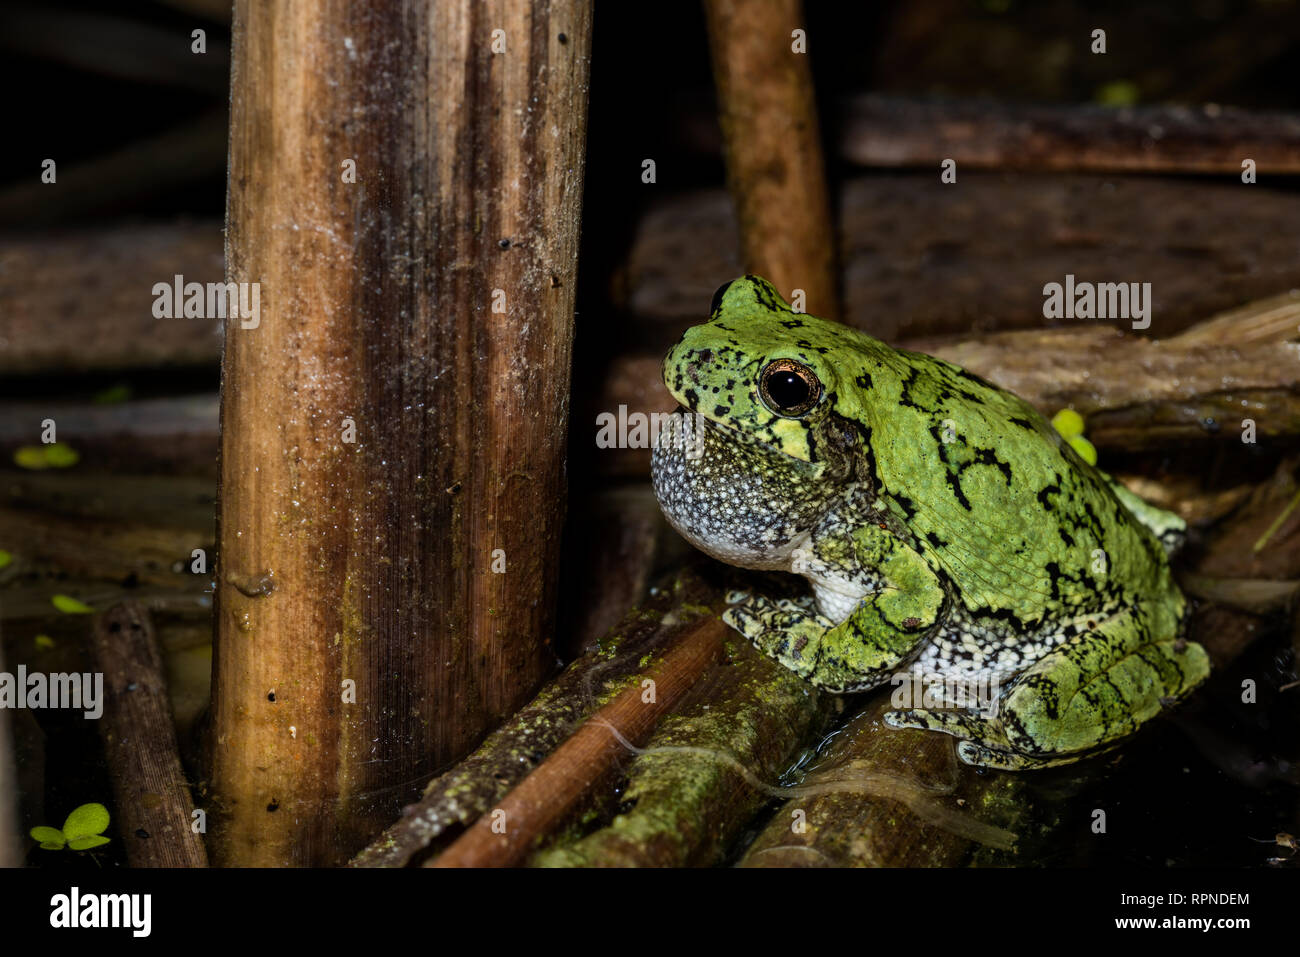 zoology / animals, amphibian (amphibia), Gray Tree Frog (Hyla versicolor) among wetland vegetation at , Additional-Rights-Clearance-Info-Not-Available - Stock Image